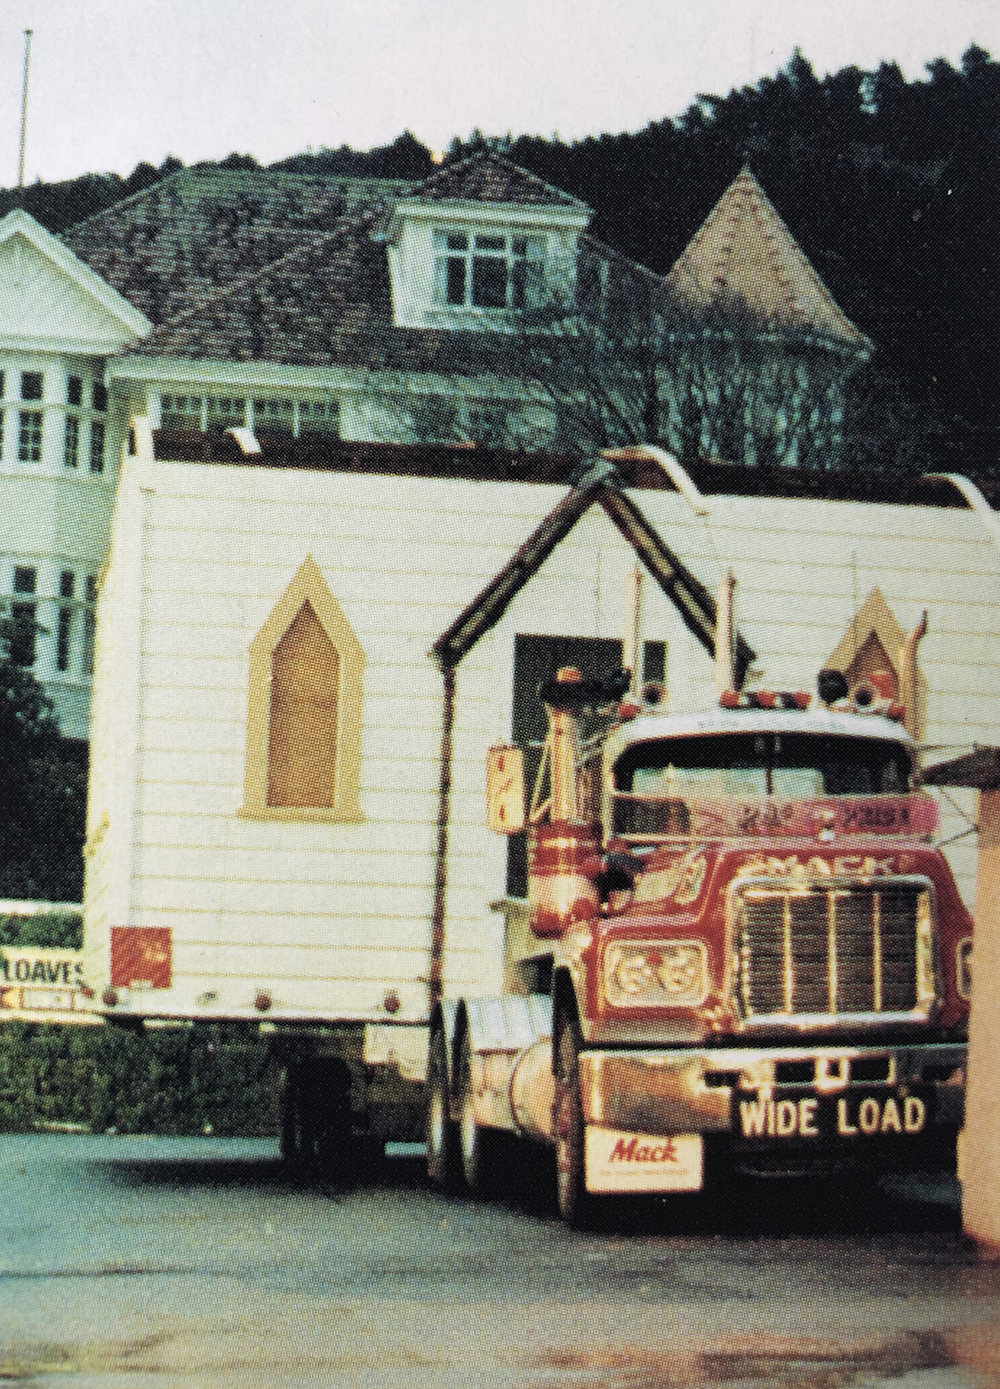 The chancel arrives as a wide load on a truck